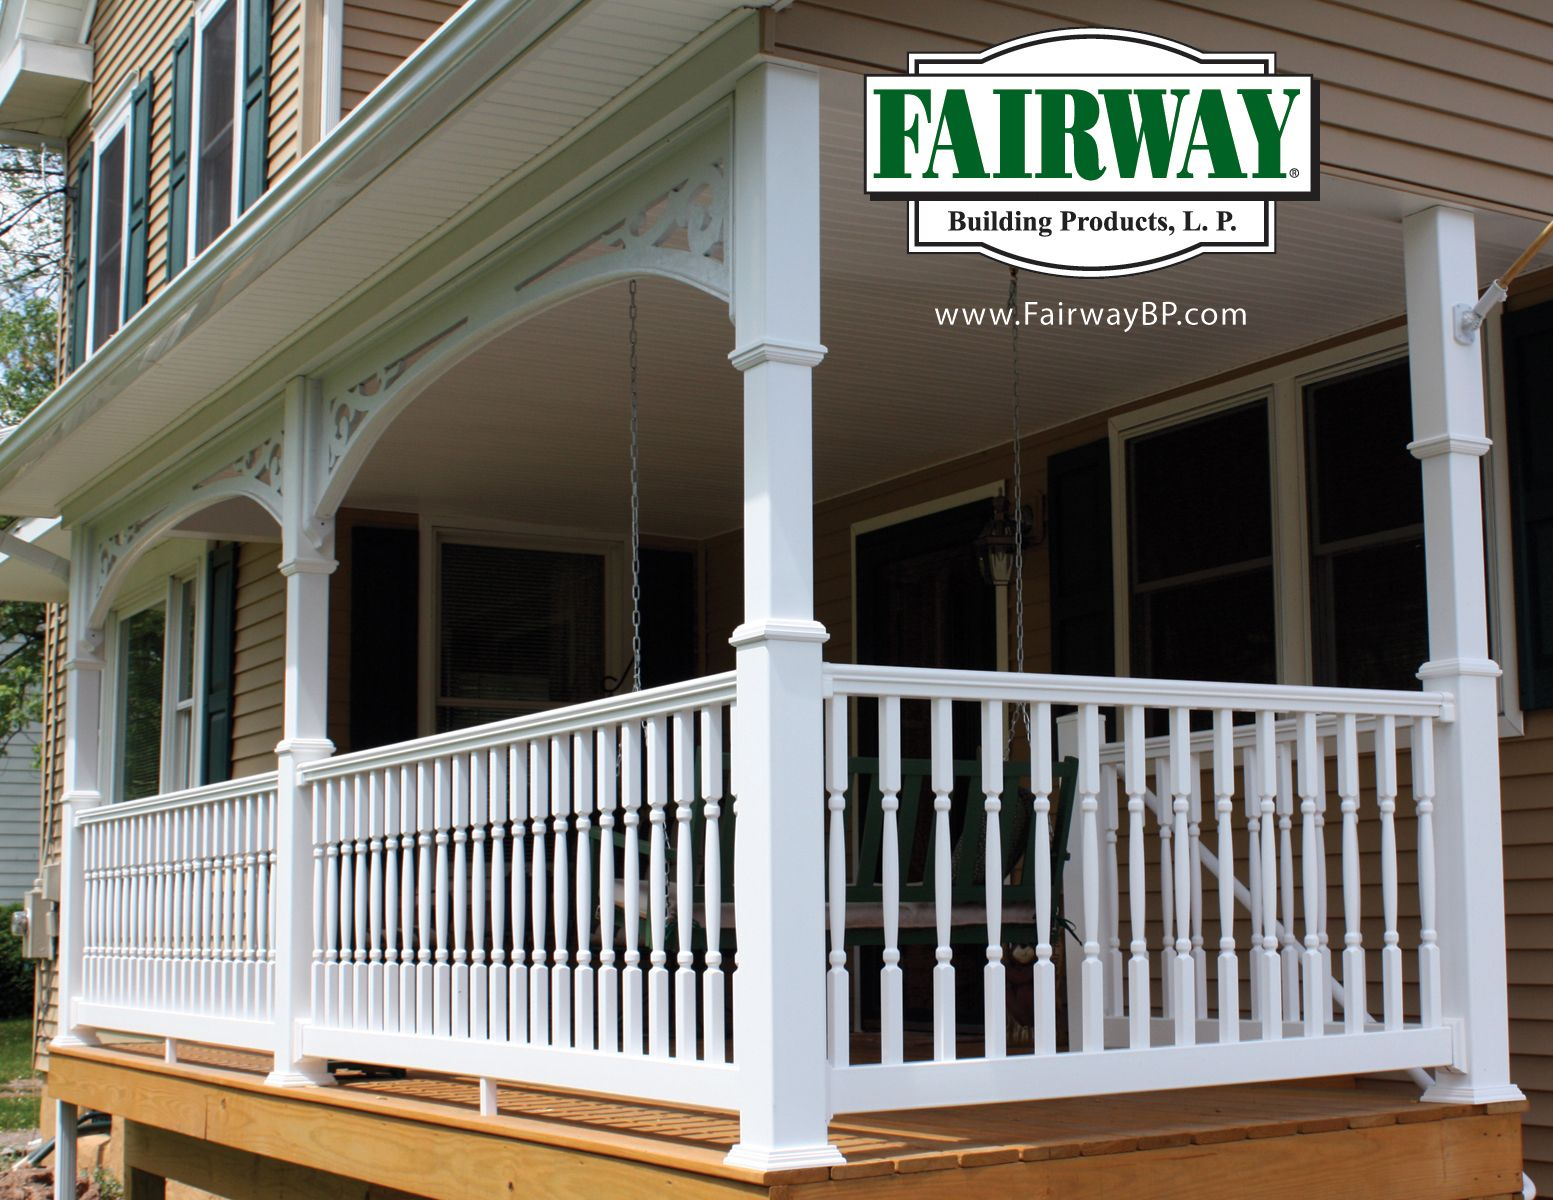 vinyl co lowes veloclub columns railings porch posts patrofi and